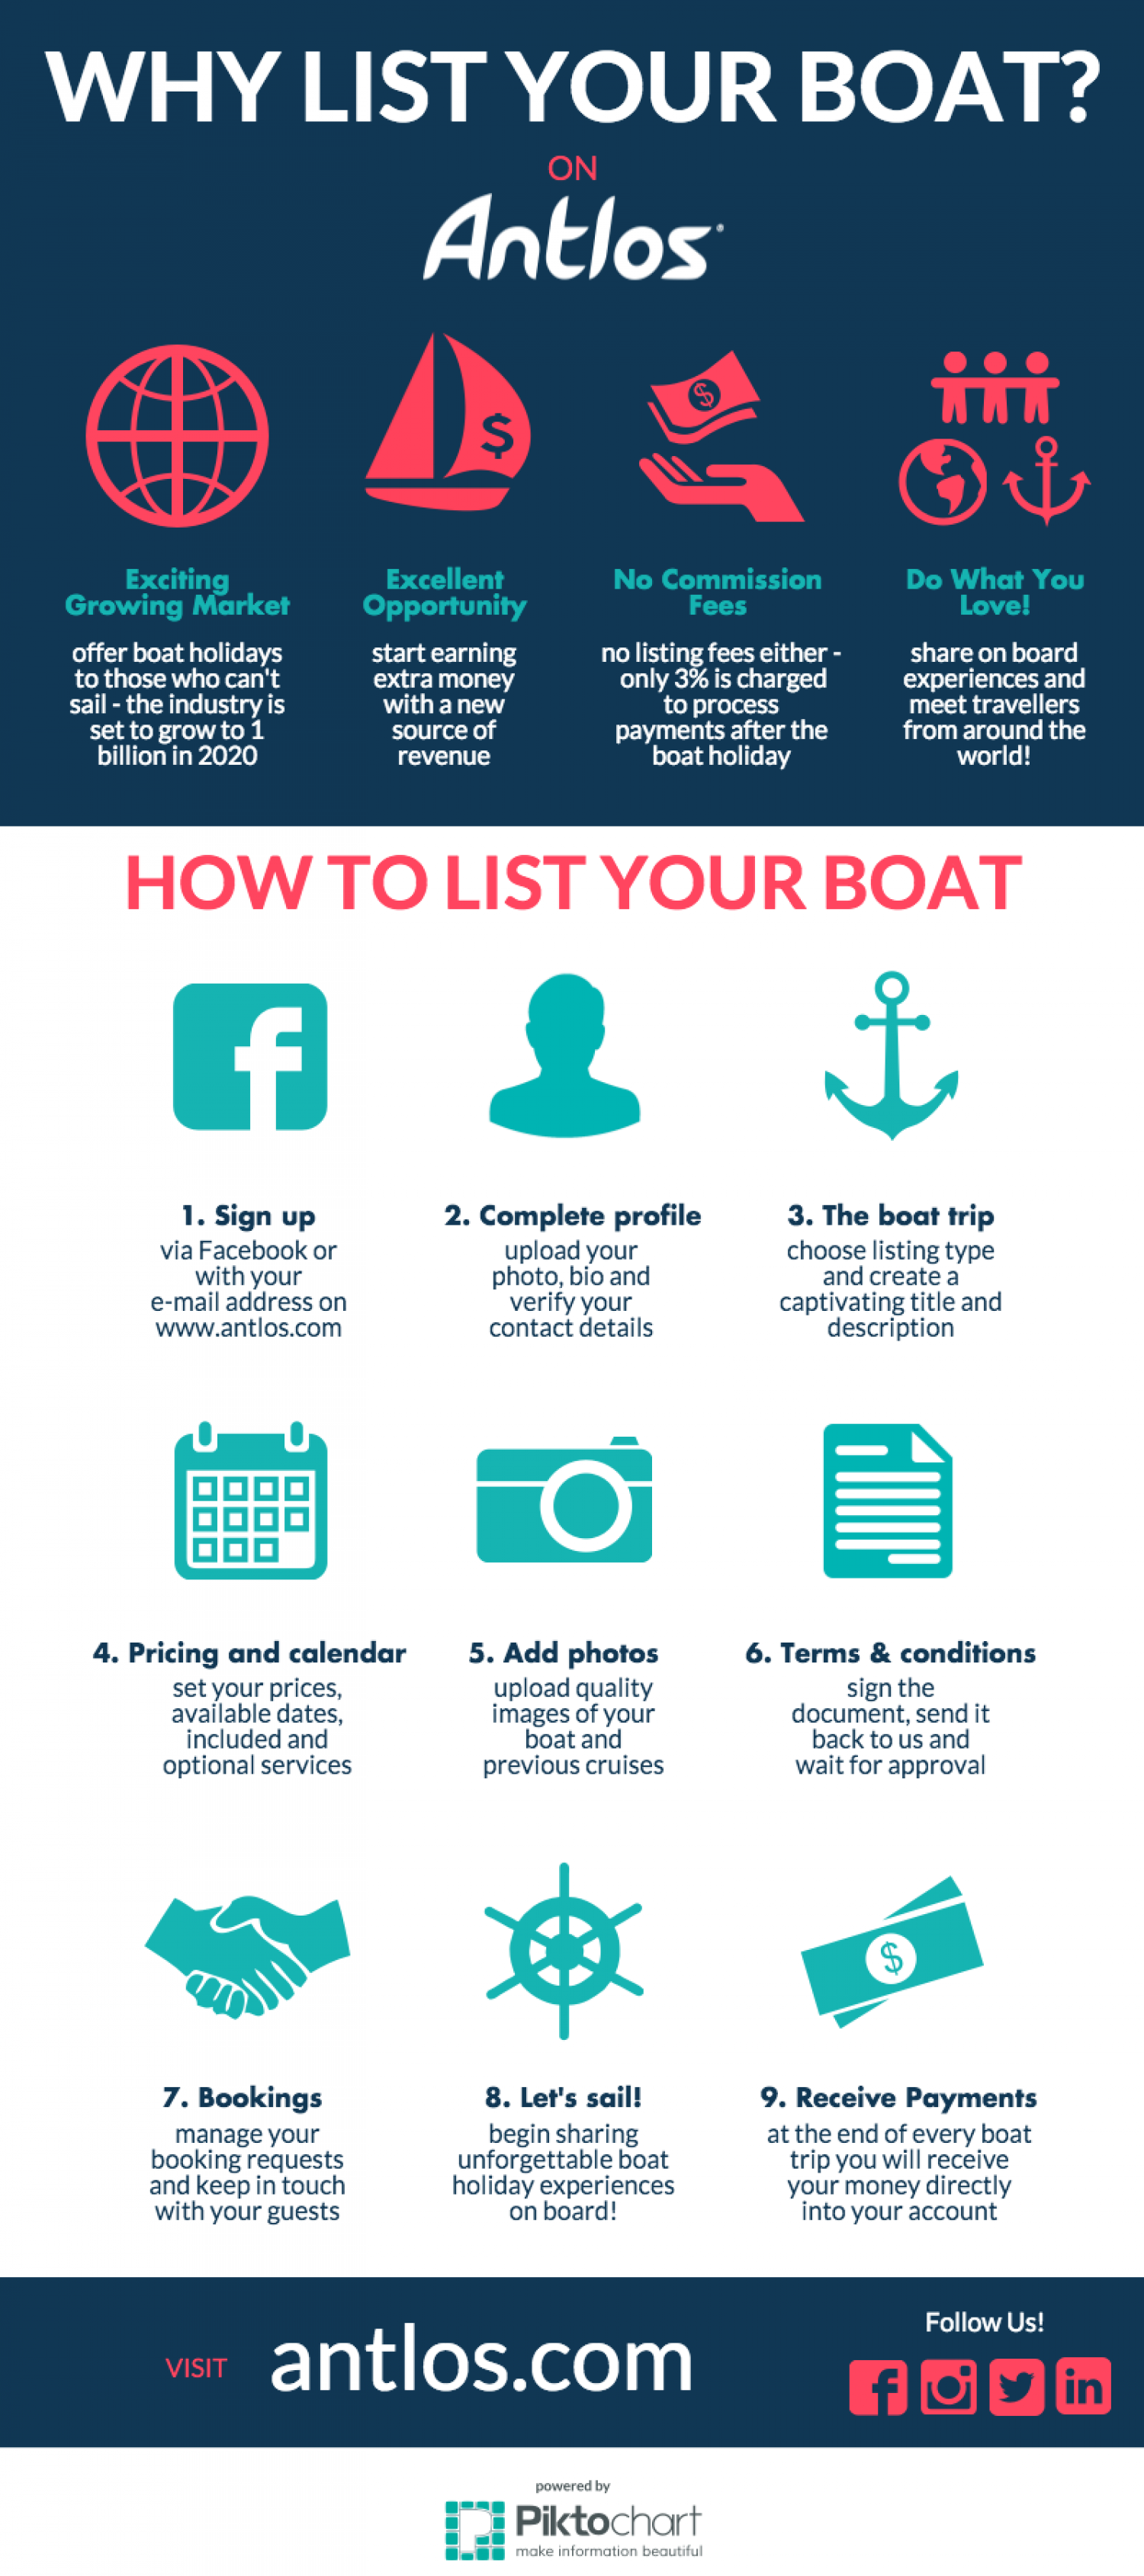 Why List Your Boat on Antlos Infographic